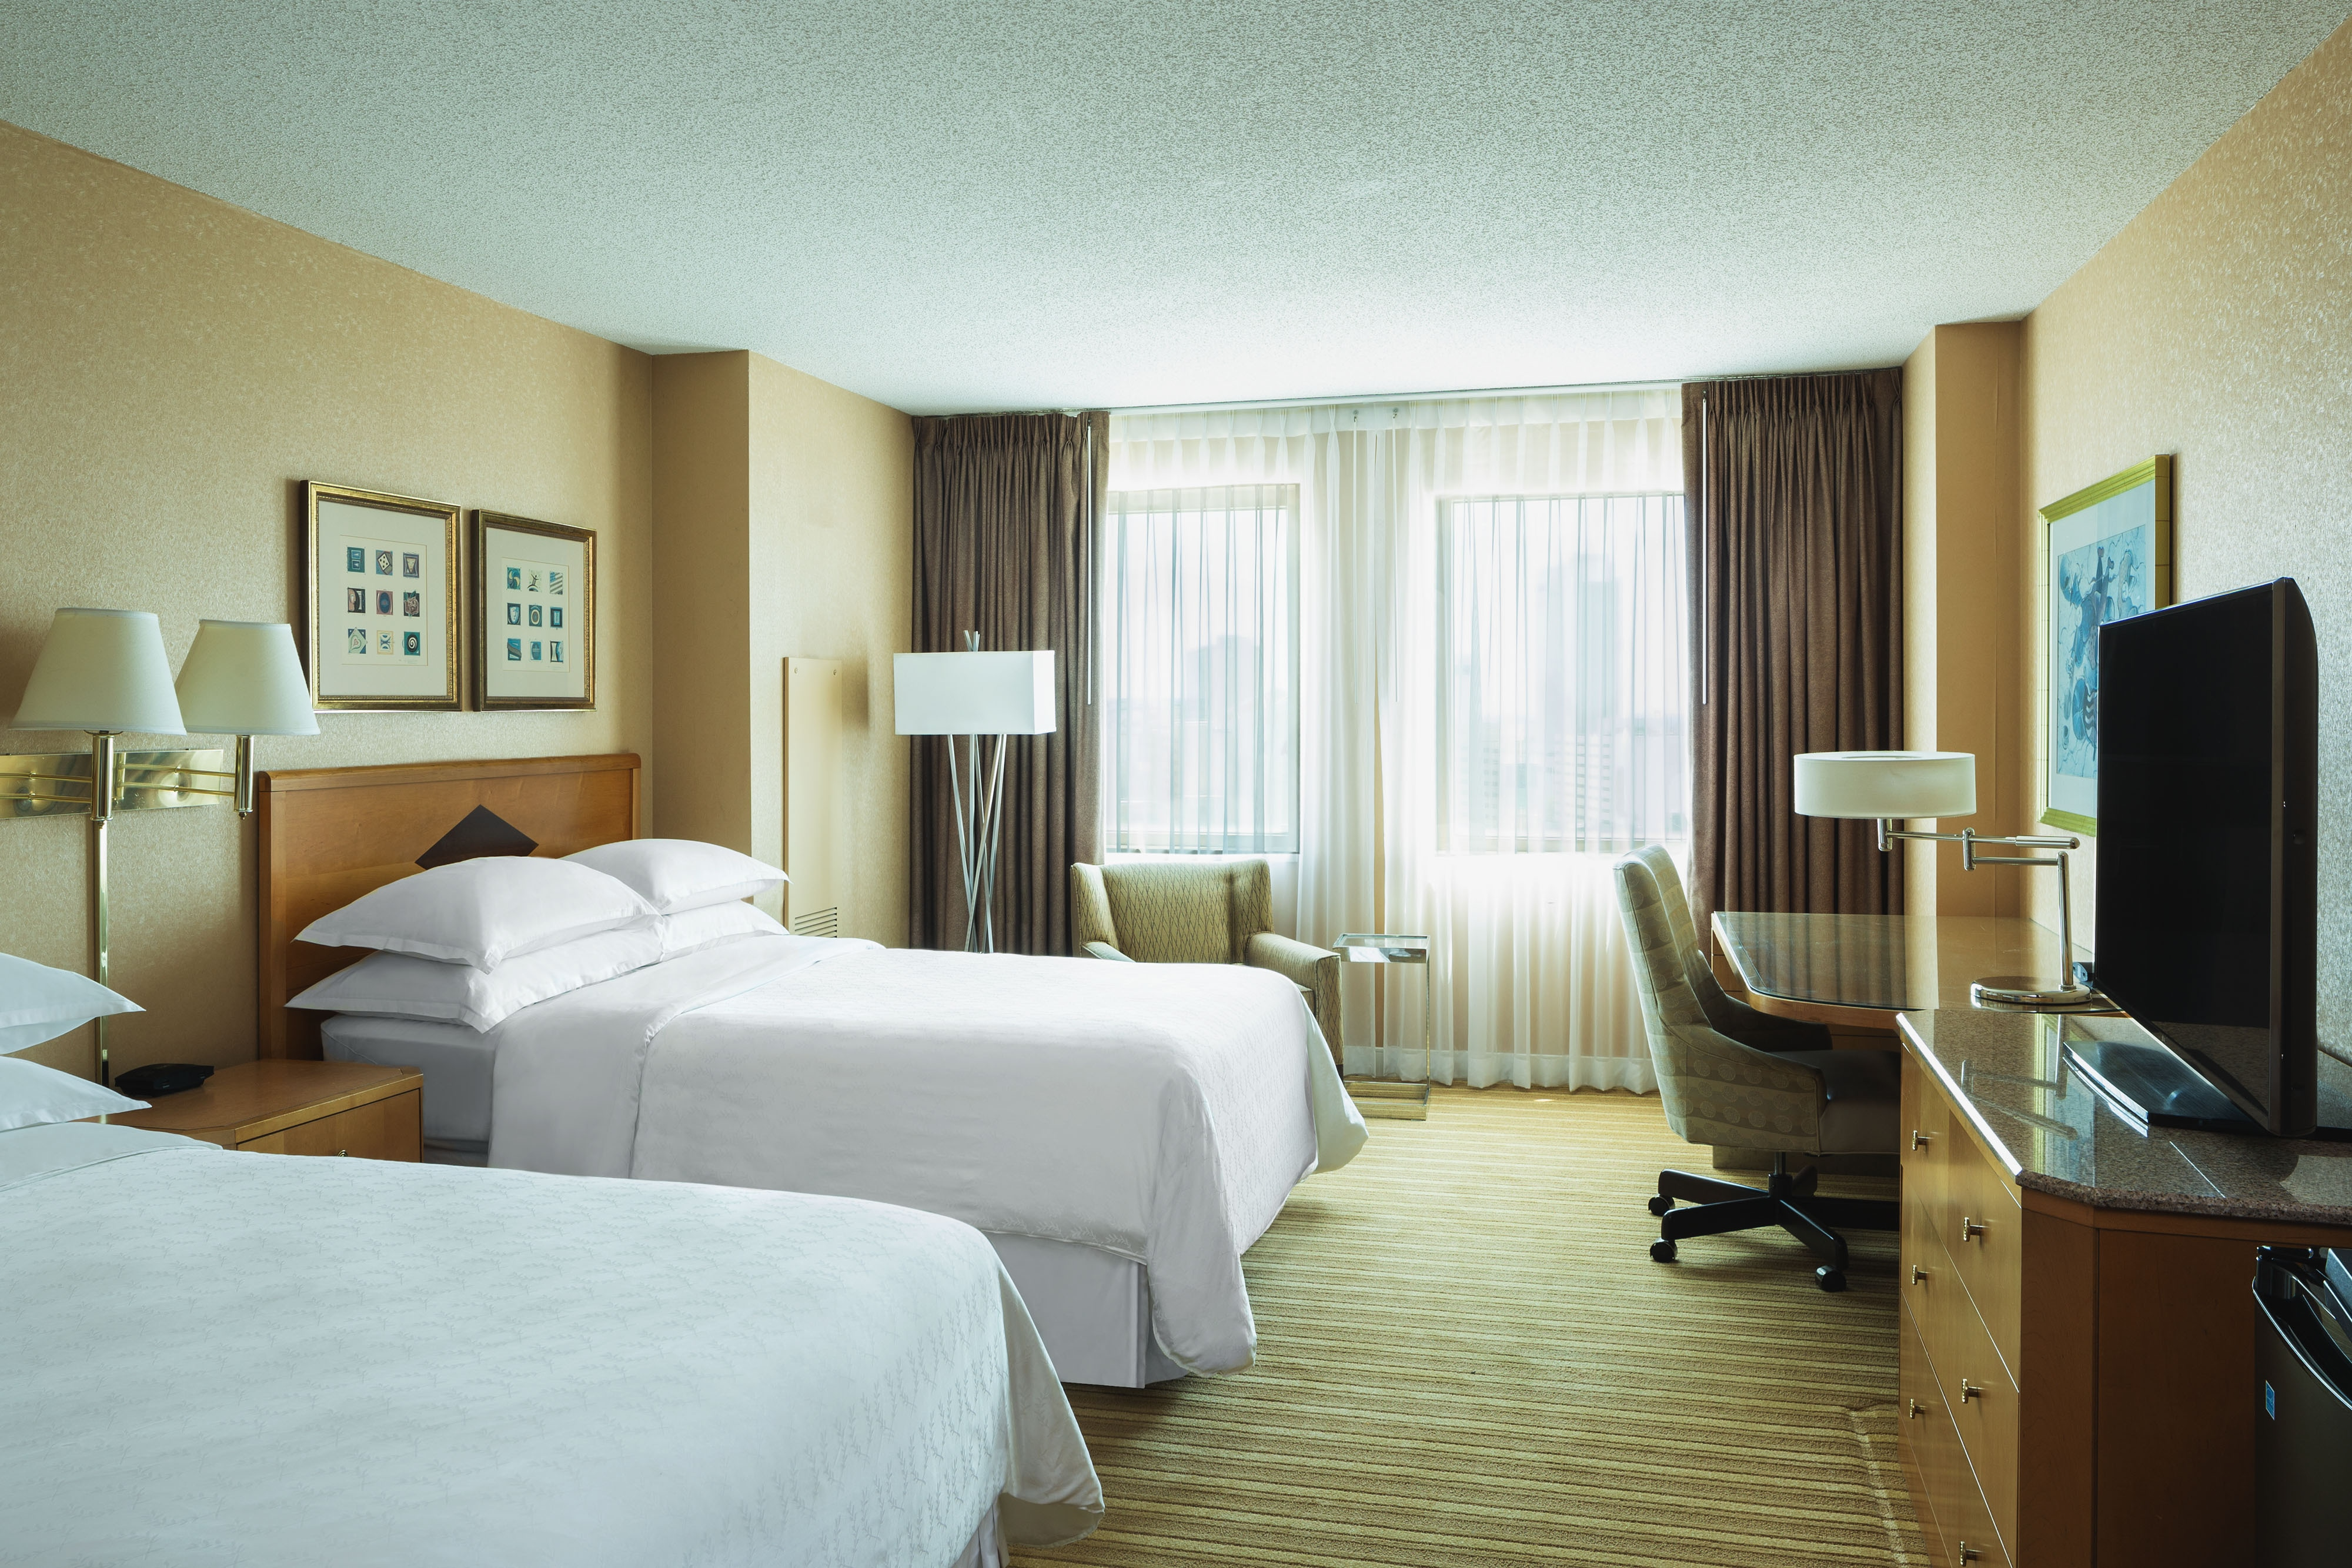 Atlantic City New Jersey Accommodations Double Guest Room